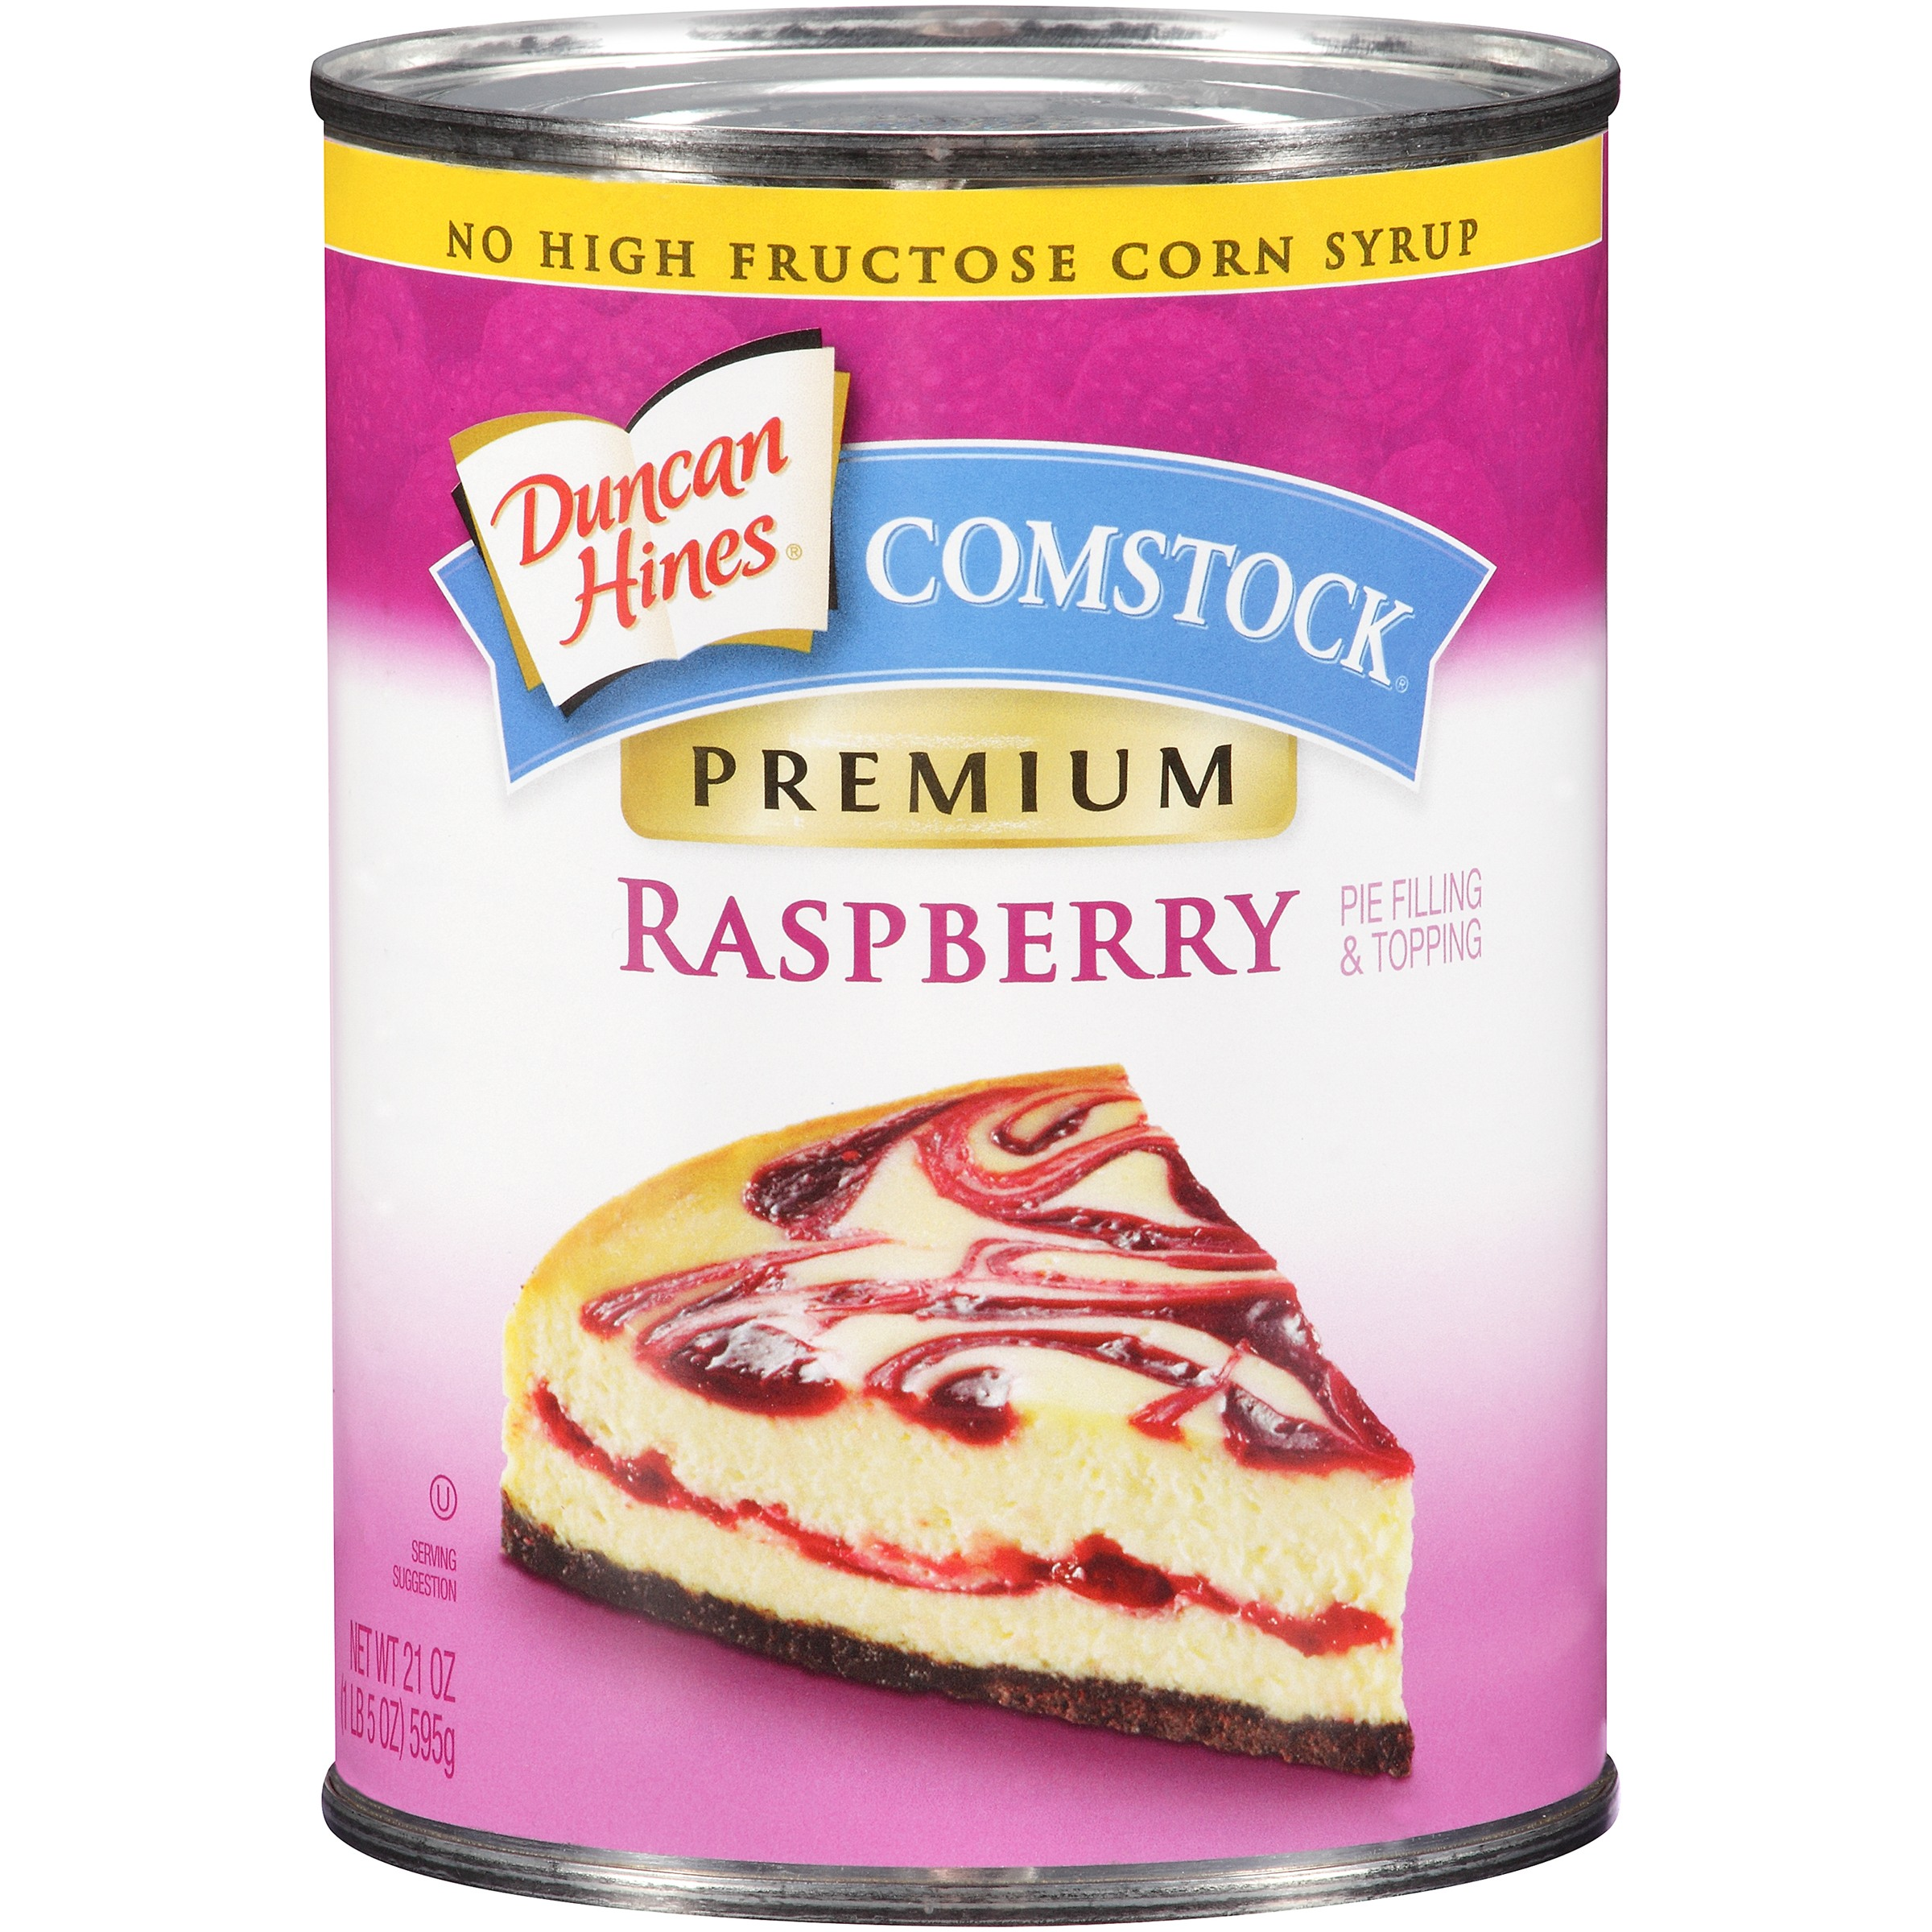 Comstock Premium Raspberry Pie Filling Or Topping, 21 oz by Pinnacle Foods Group LLC